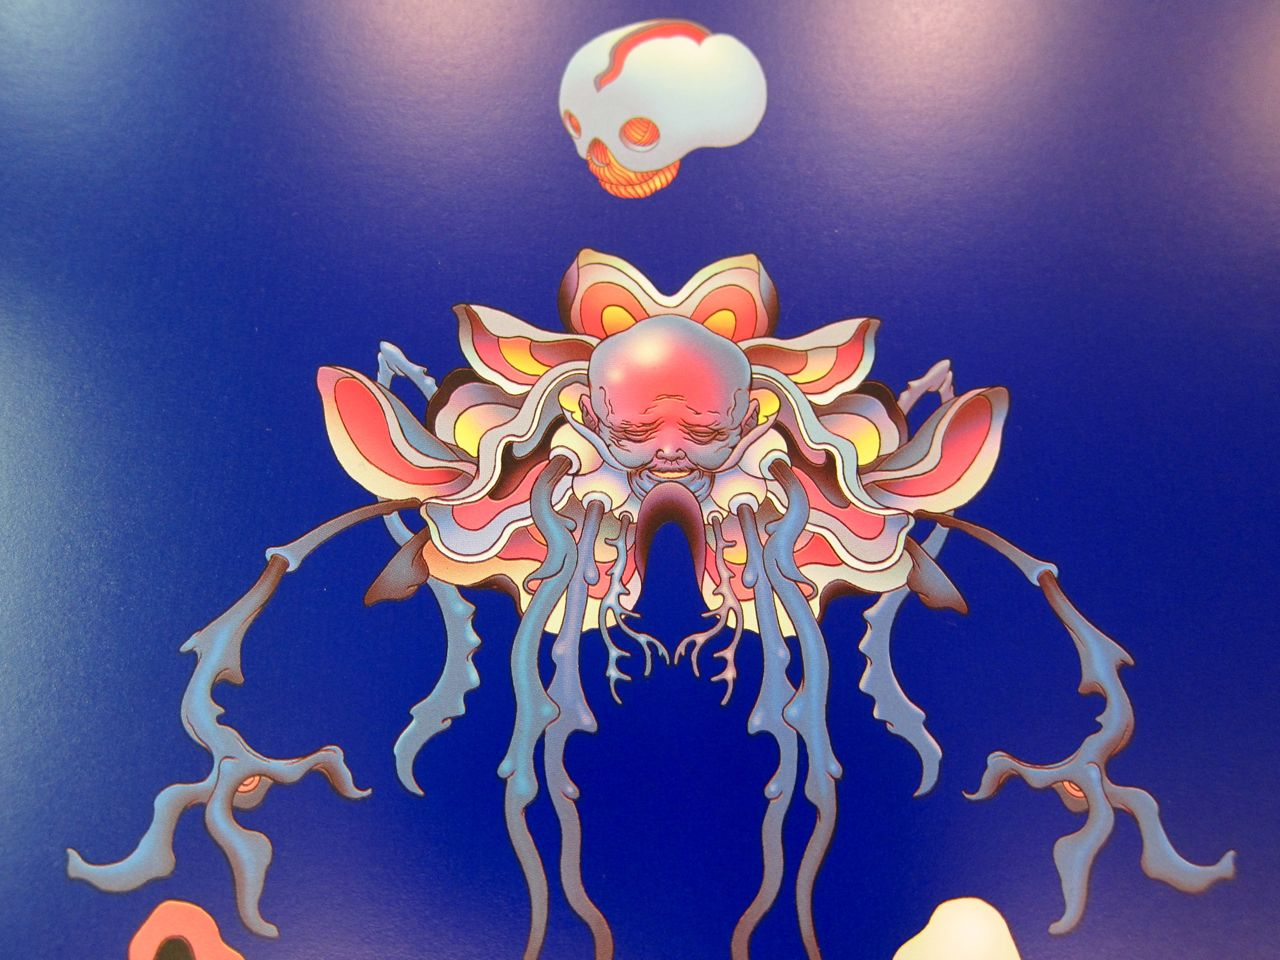 James Jean Reed Space signing AM 25